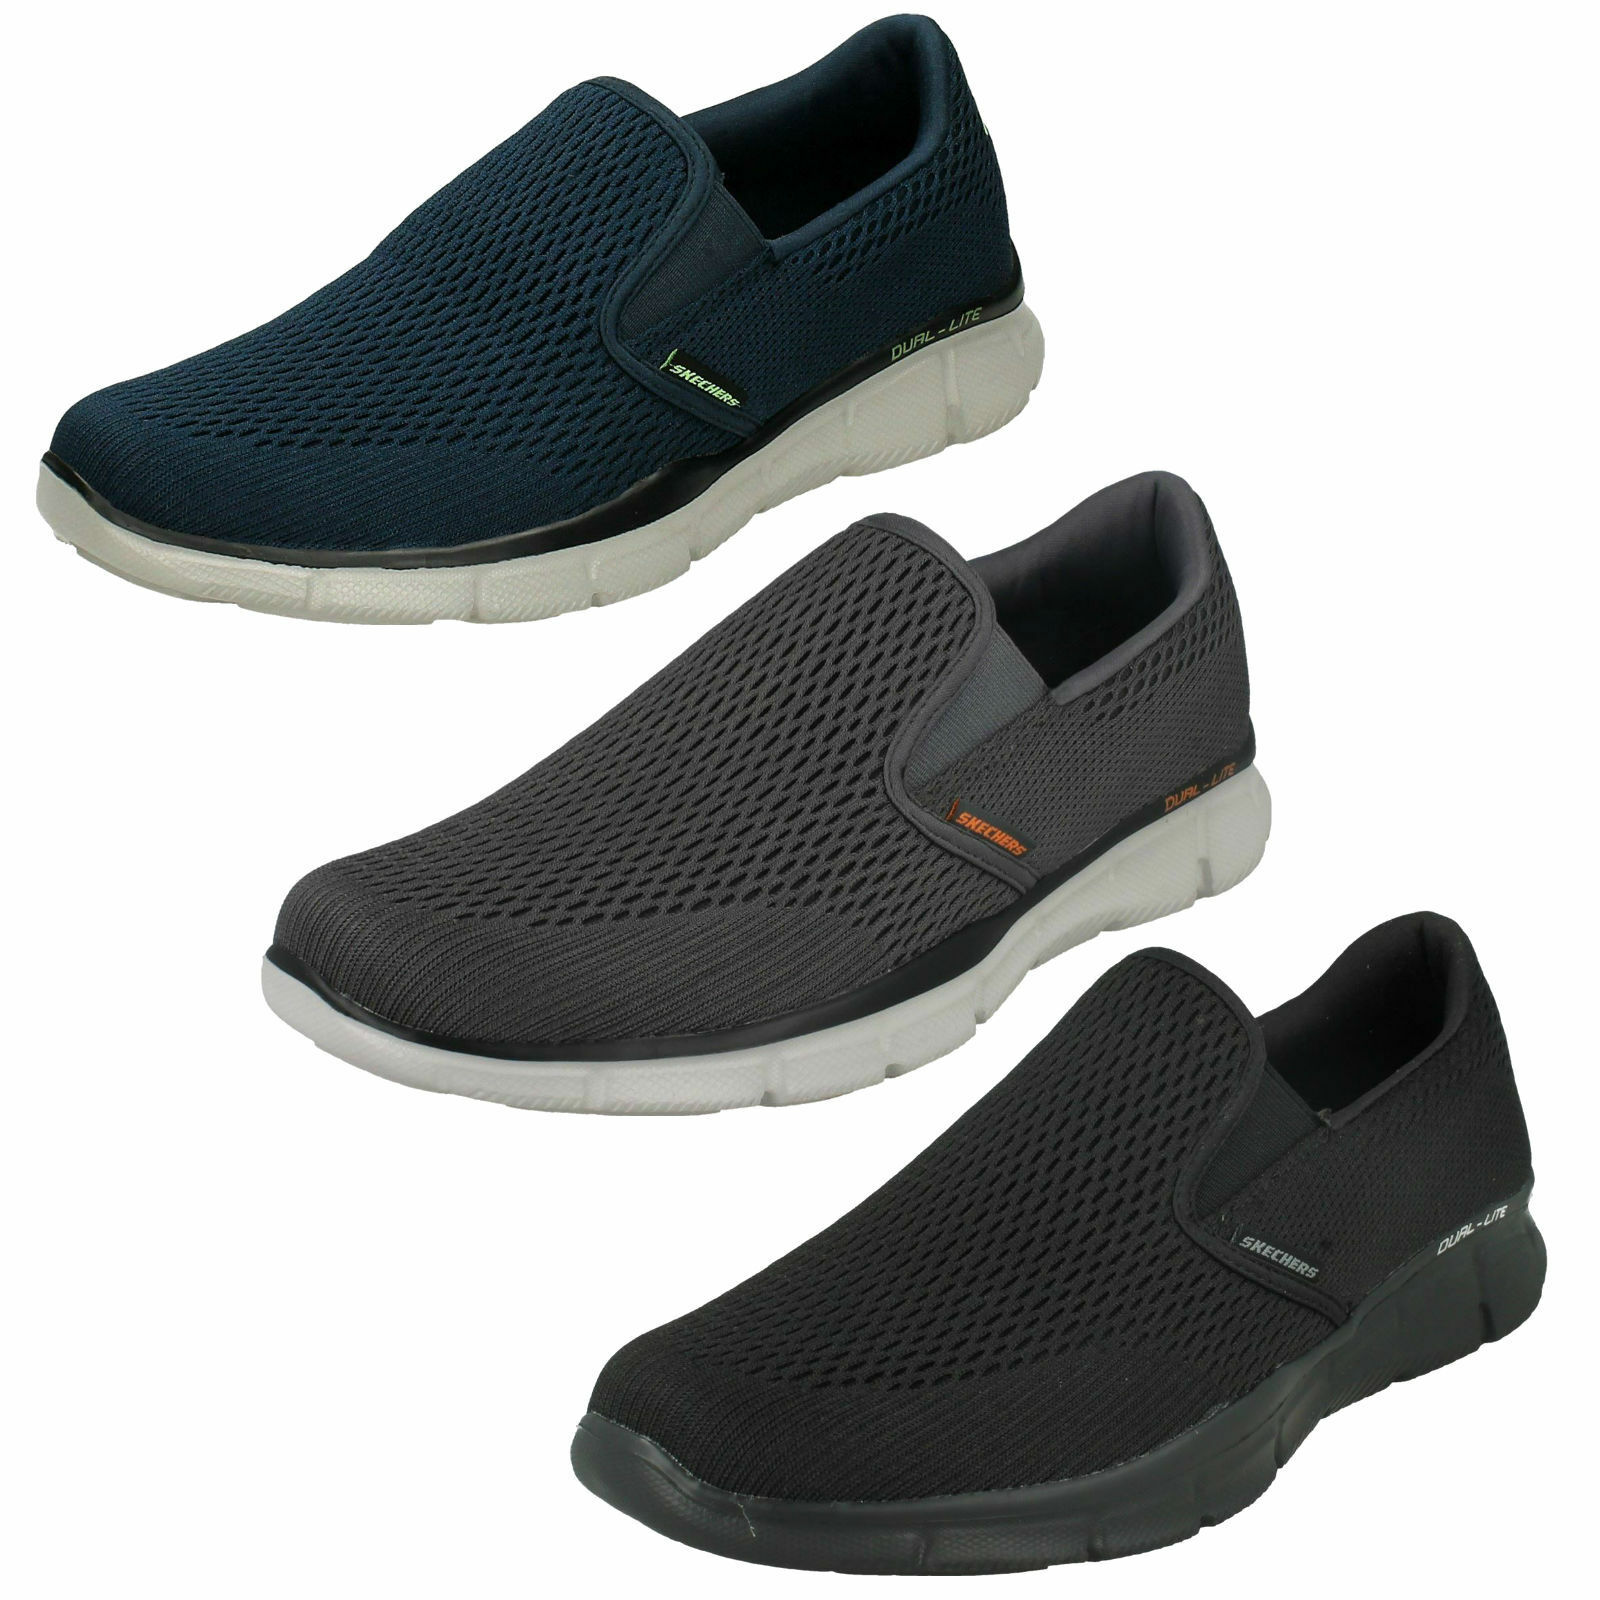 MENS SKECHERS EQUALIZER DOUBLE PLAY SLIP ON MEMORY FOAM TRAINERS SHOES 51509